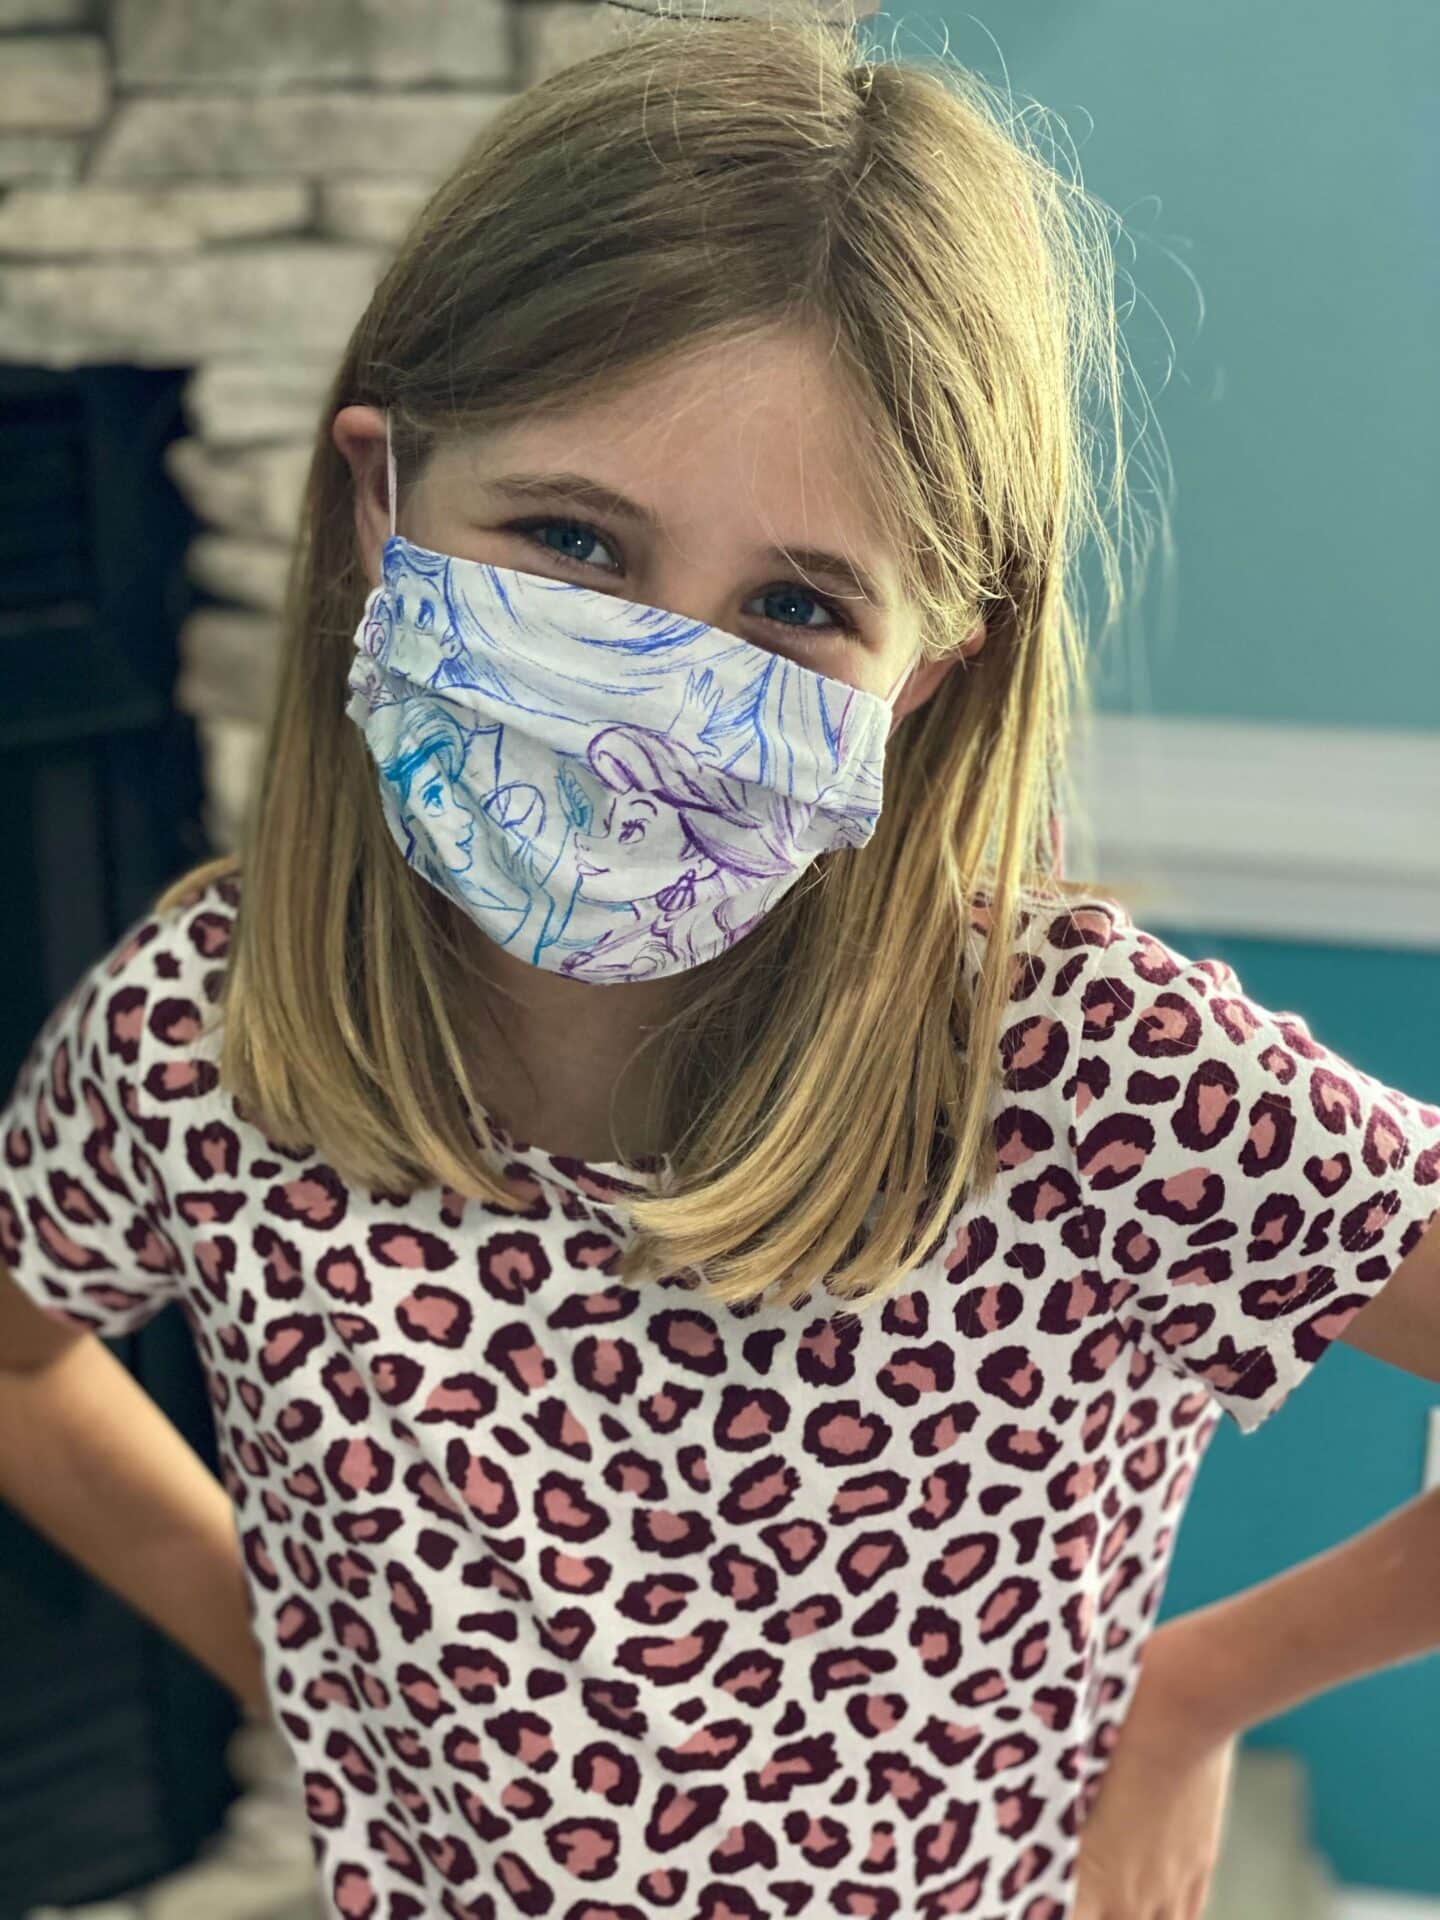 Back to School 2020: Sending Kids to School During Pandemic for 2020 - 2021 School Year.